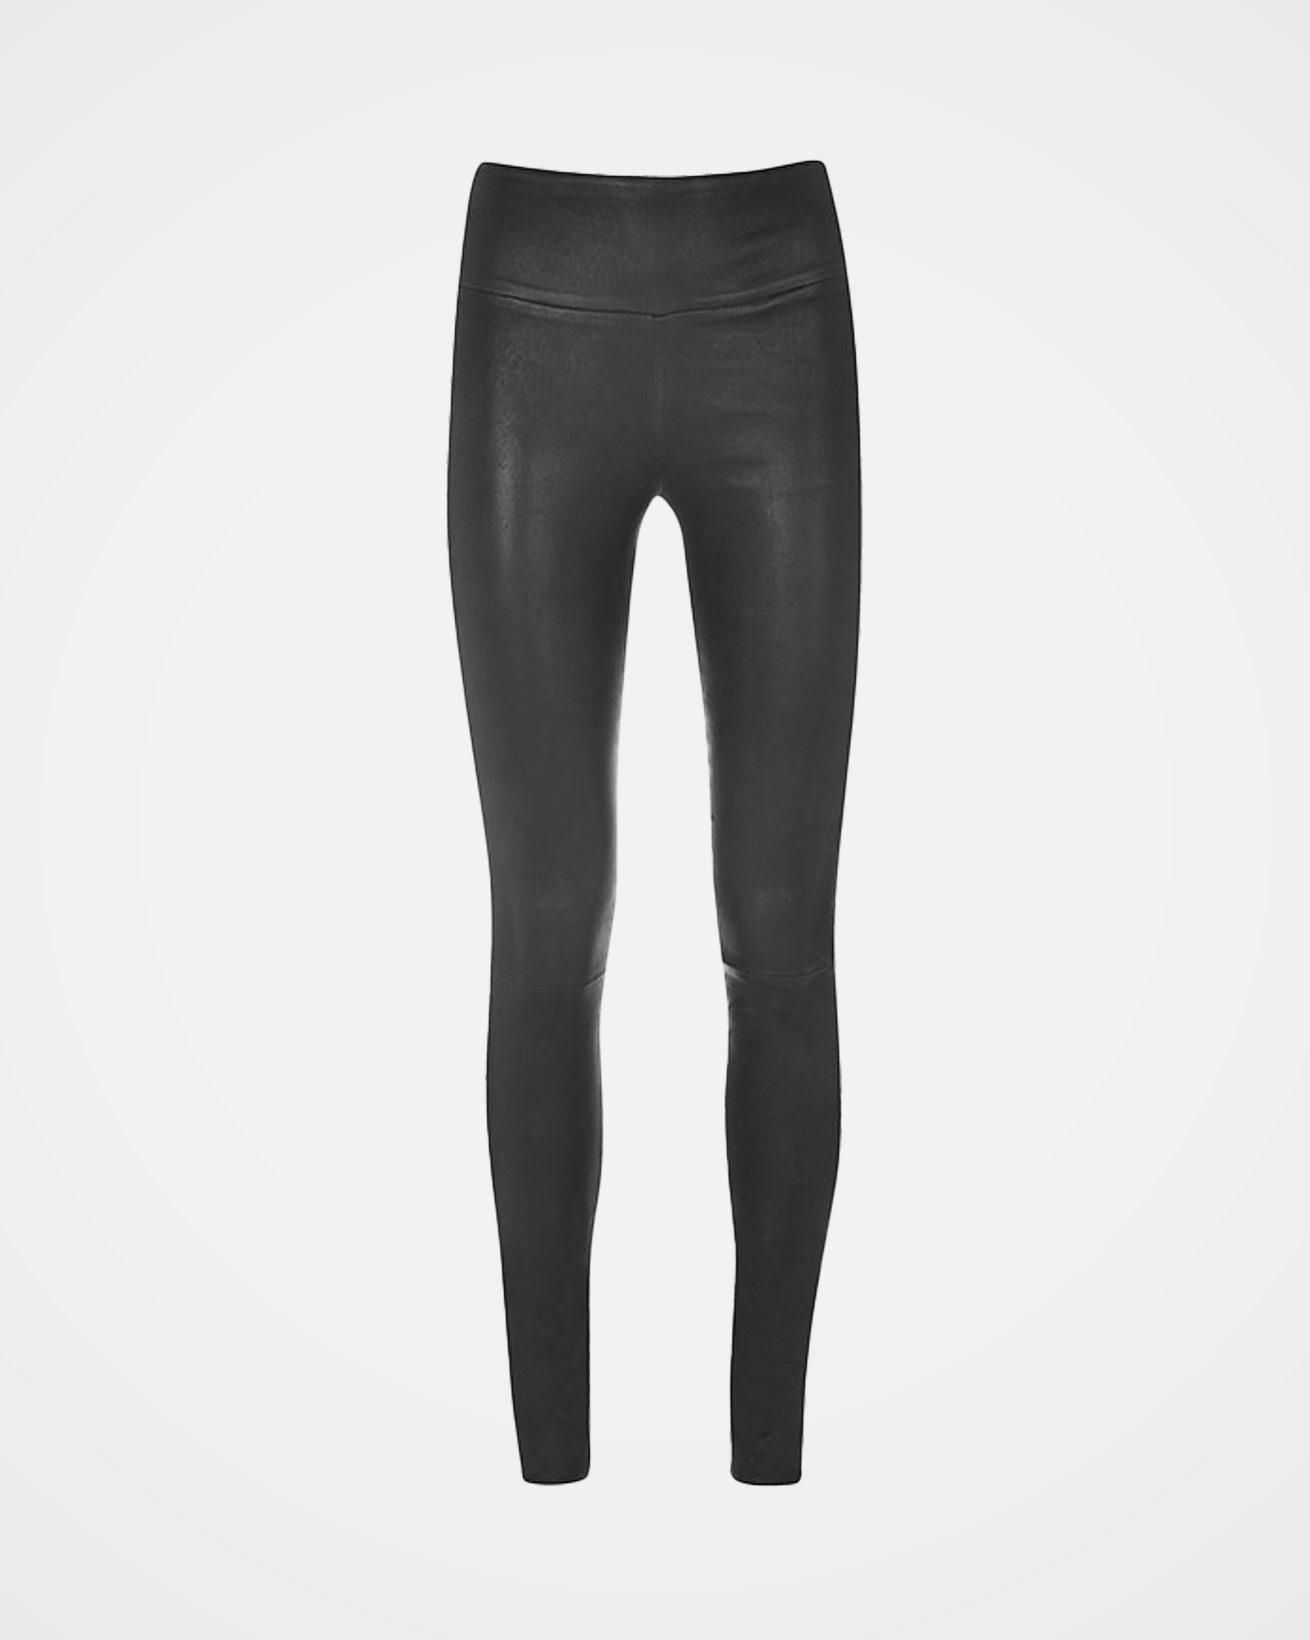 6883_stretch-leather-legging_black_front.jpg